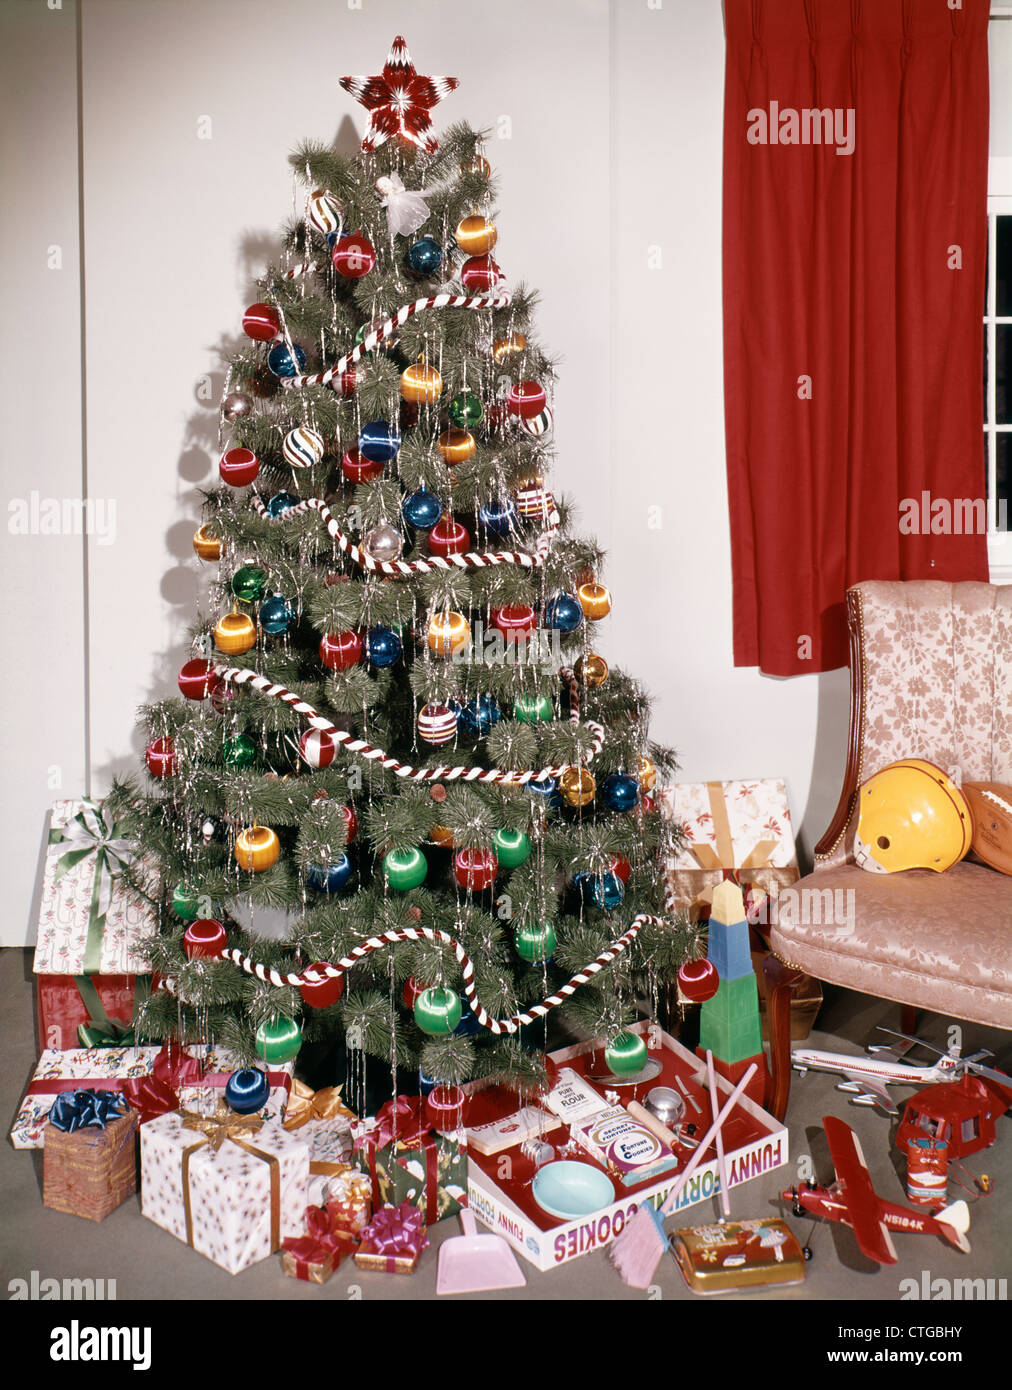 1960s Decorated Christmas Tree With Ornaments Garland: how to decorate a christmas tree without tinsel